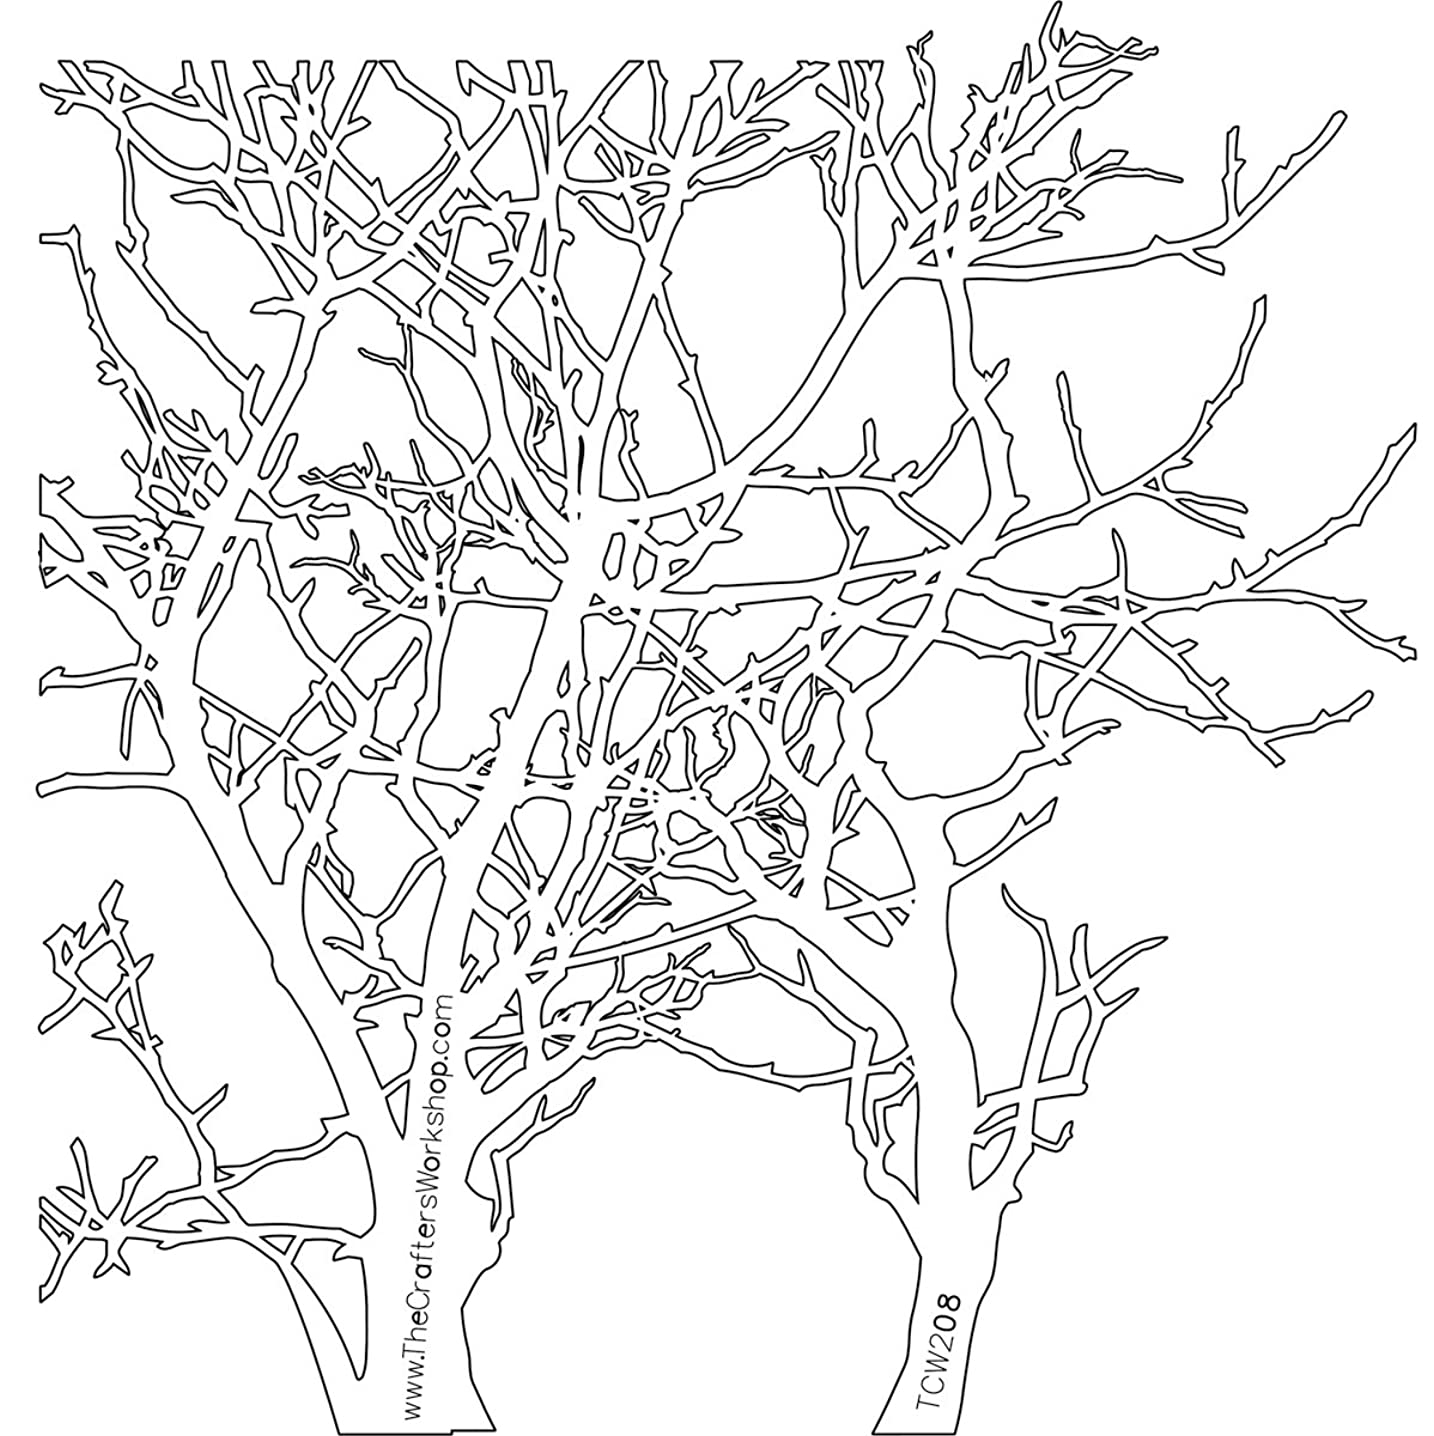 Crafters Workshop Crafter's Workshop Template, 6 by 6-Inch, Branches (474770)